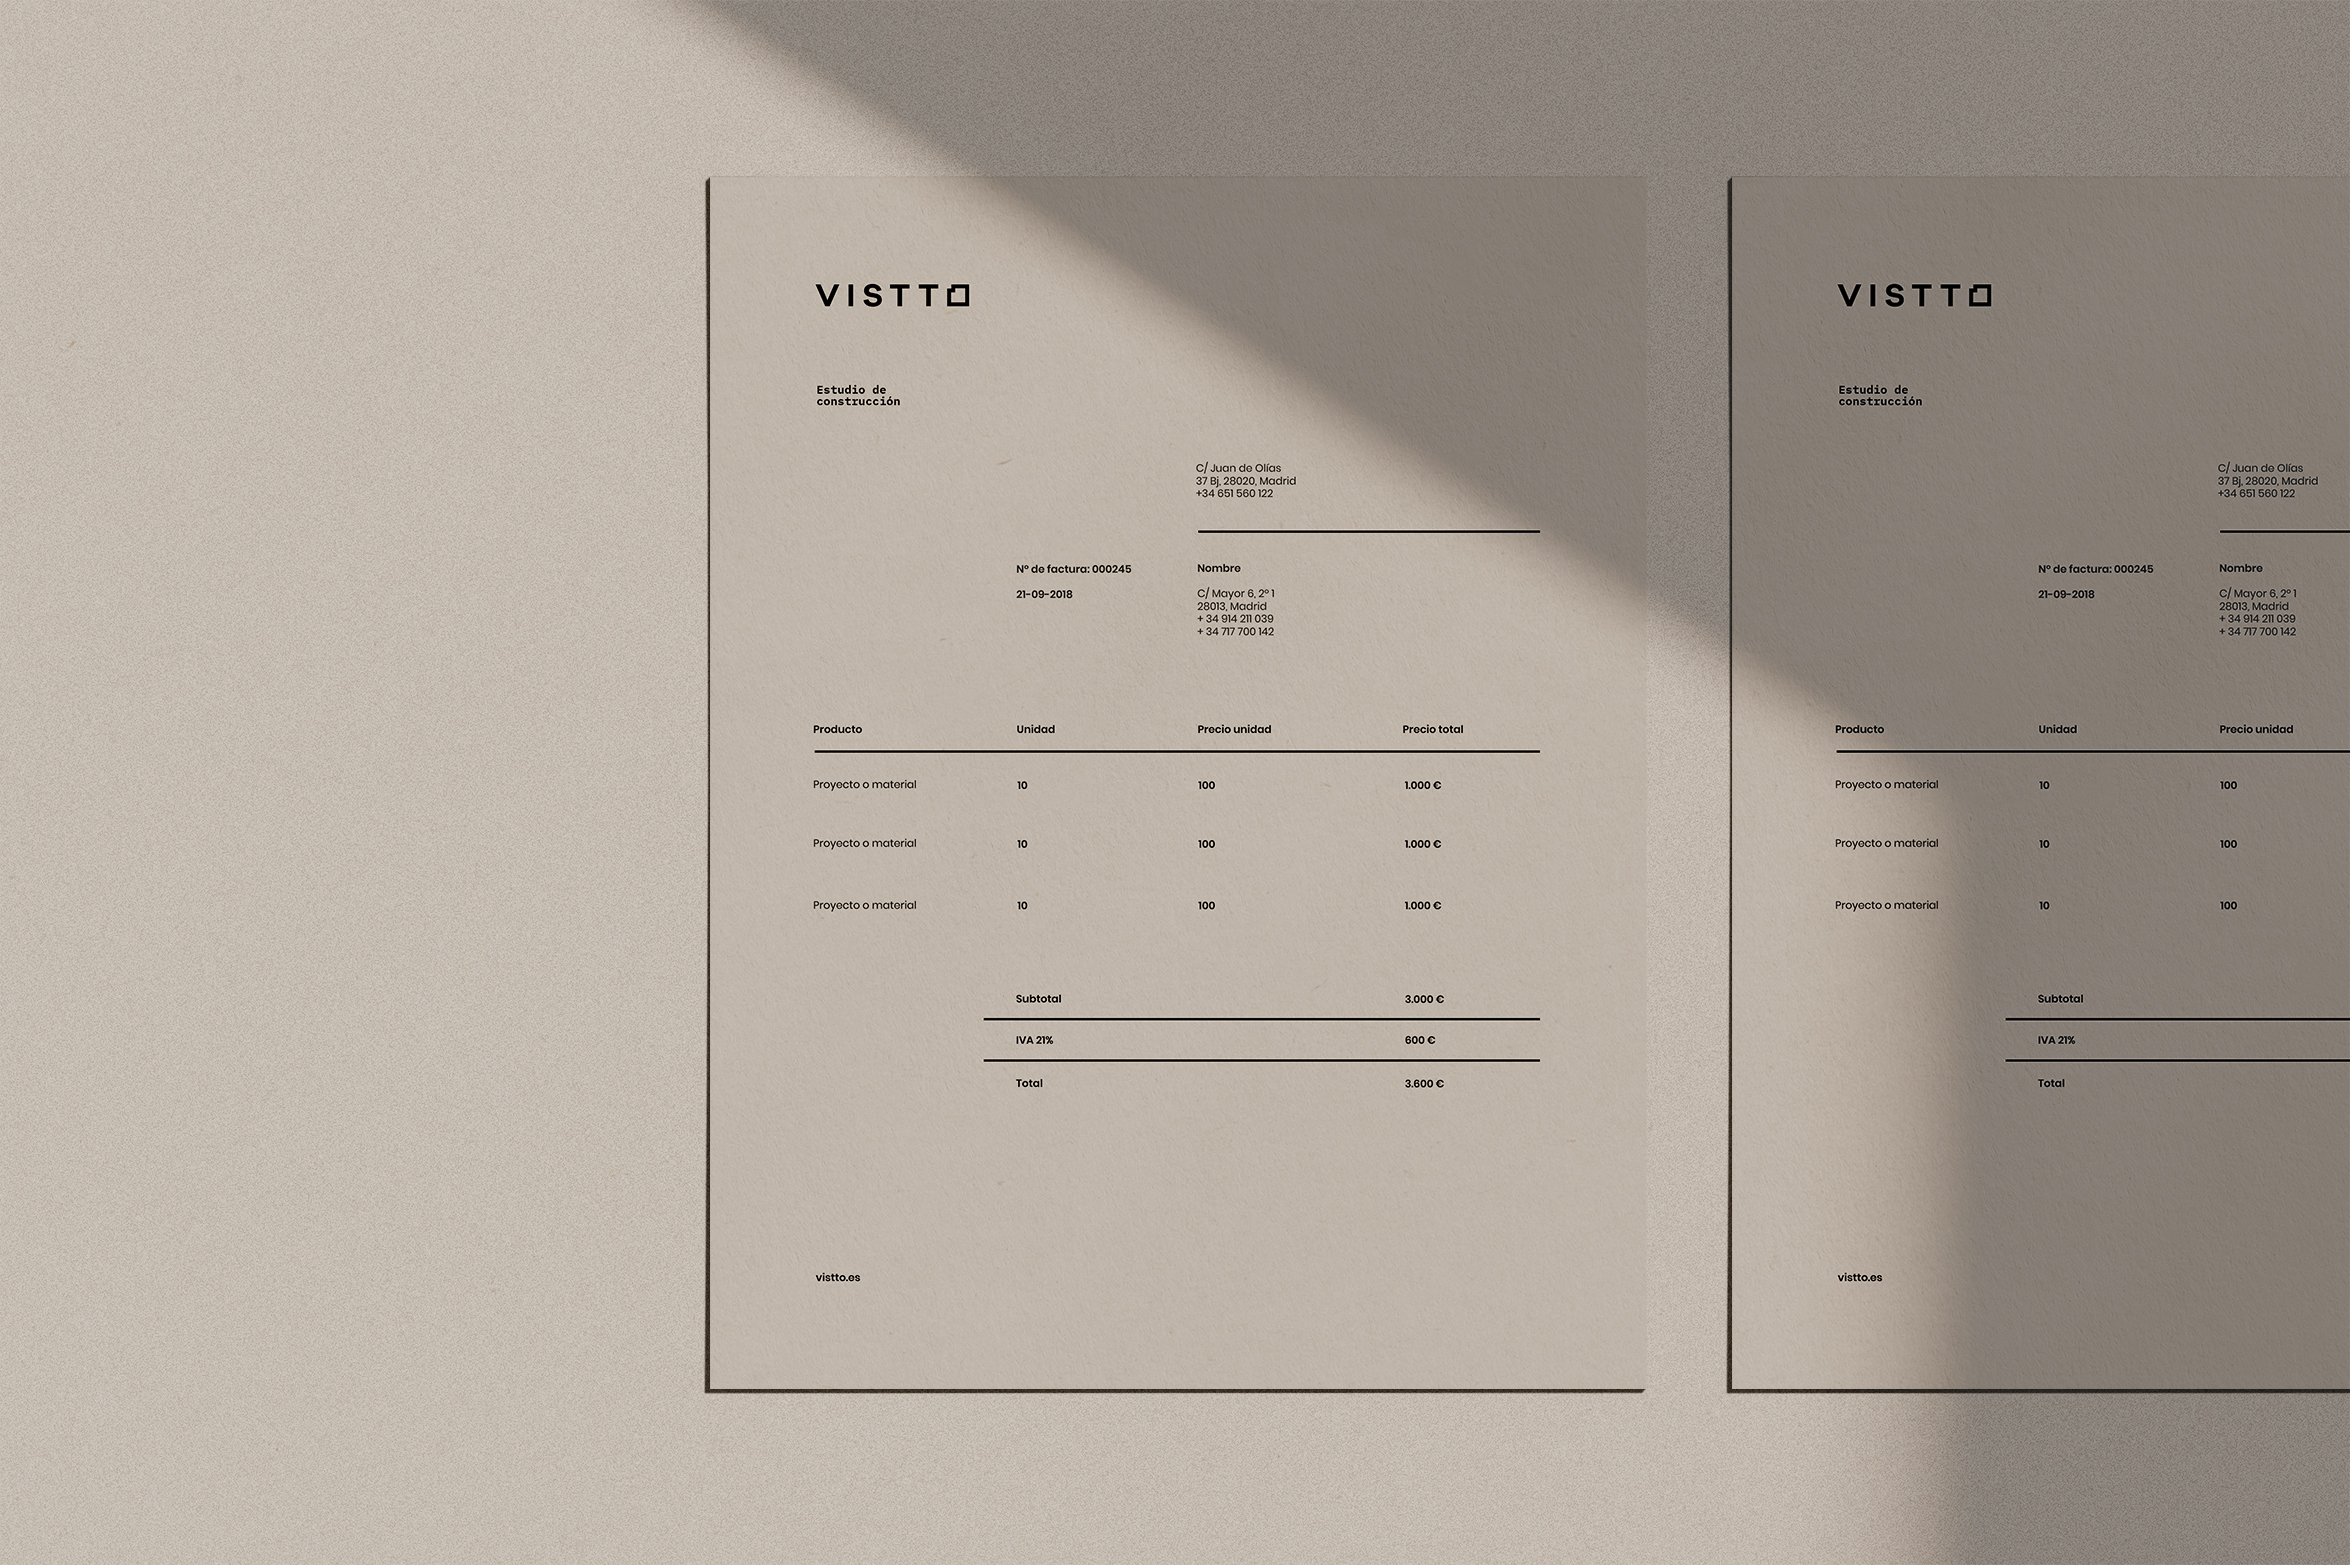 Vistto Naming and Branding by The Woork Co